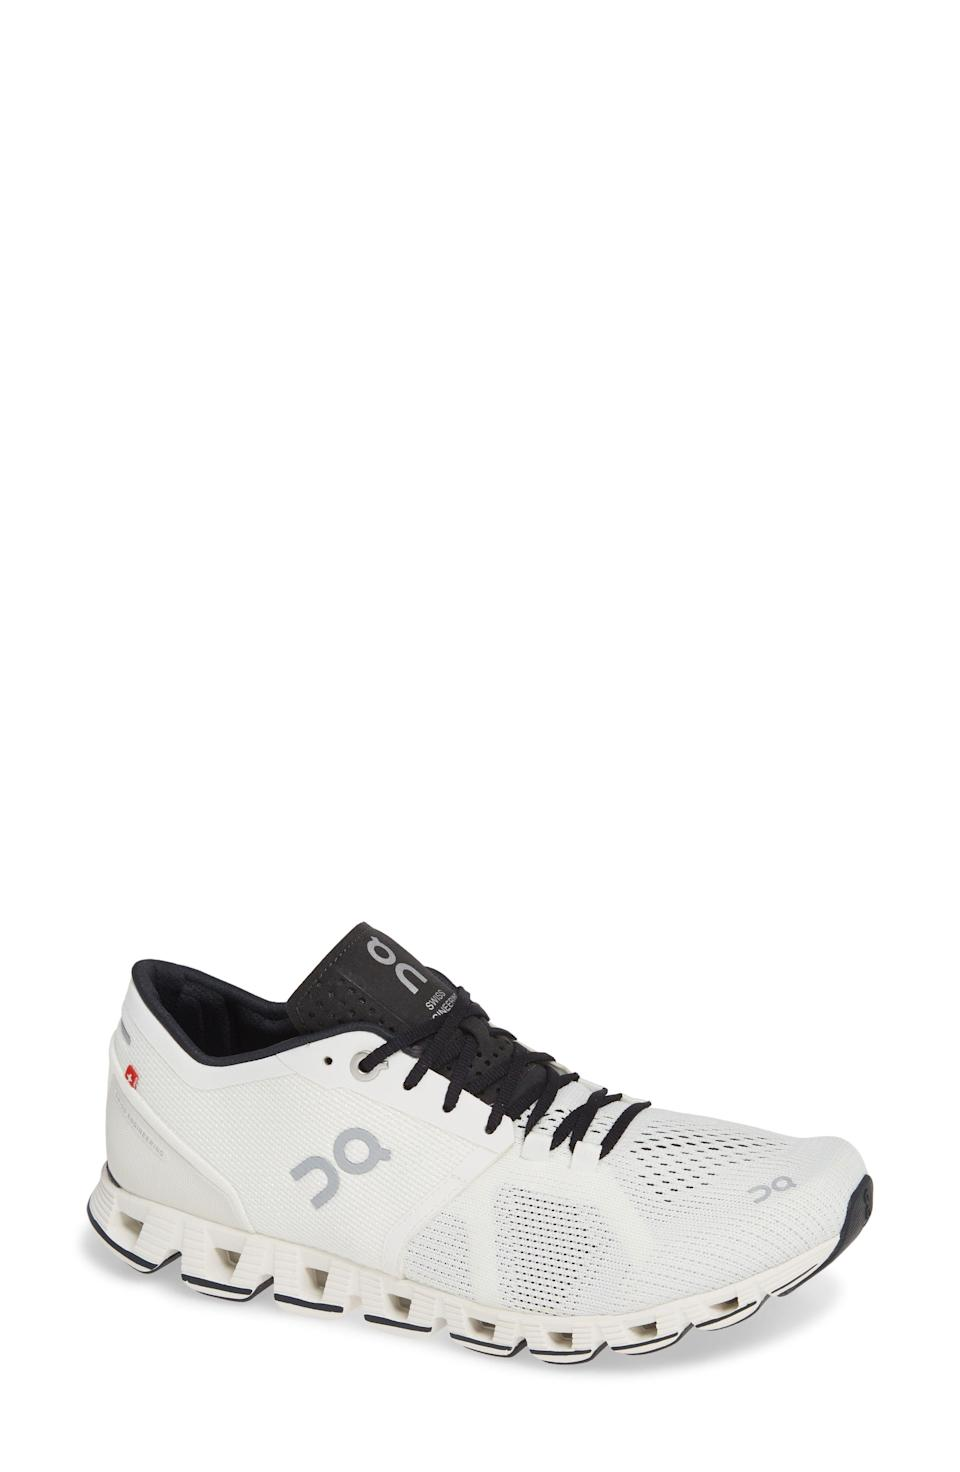 """<p><strong>ON</strong></p><p>nordstrom.com</p><p><strong>$139.95</strong></p><p><a href=""""https://go.redirectingat.com?id=74968X1596630&url=https%3A%2F%2Fwww.nordstrom.com%2Fs%2Fon-cloud-x-running-shoe-women%2F5139766&sref=https%3A%2F%2Fwww.countryliving.com%2Fshopping%2Fgifts%2Fg1416%2Fvalentines-day-gifts%2F"""" rel=""""nofollow noopener"""" target=""""_blank"""" data-ylk=""""slk:Shop Now"""" class=""""link rapid-noclick-resp"""">Shop Now</a></p><p>These running shoes are a great gift for the athletes. The name says it all. Your partner will appreciate this gift on their next run or workout. </p>"""